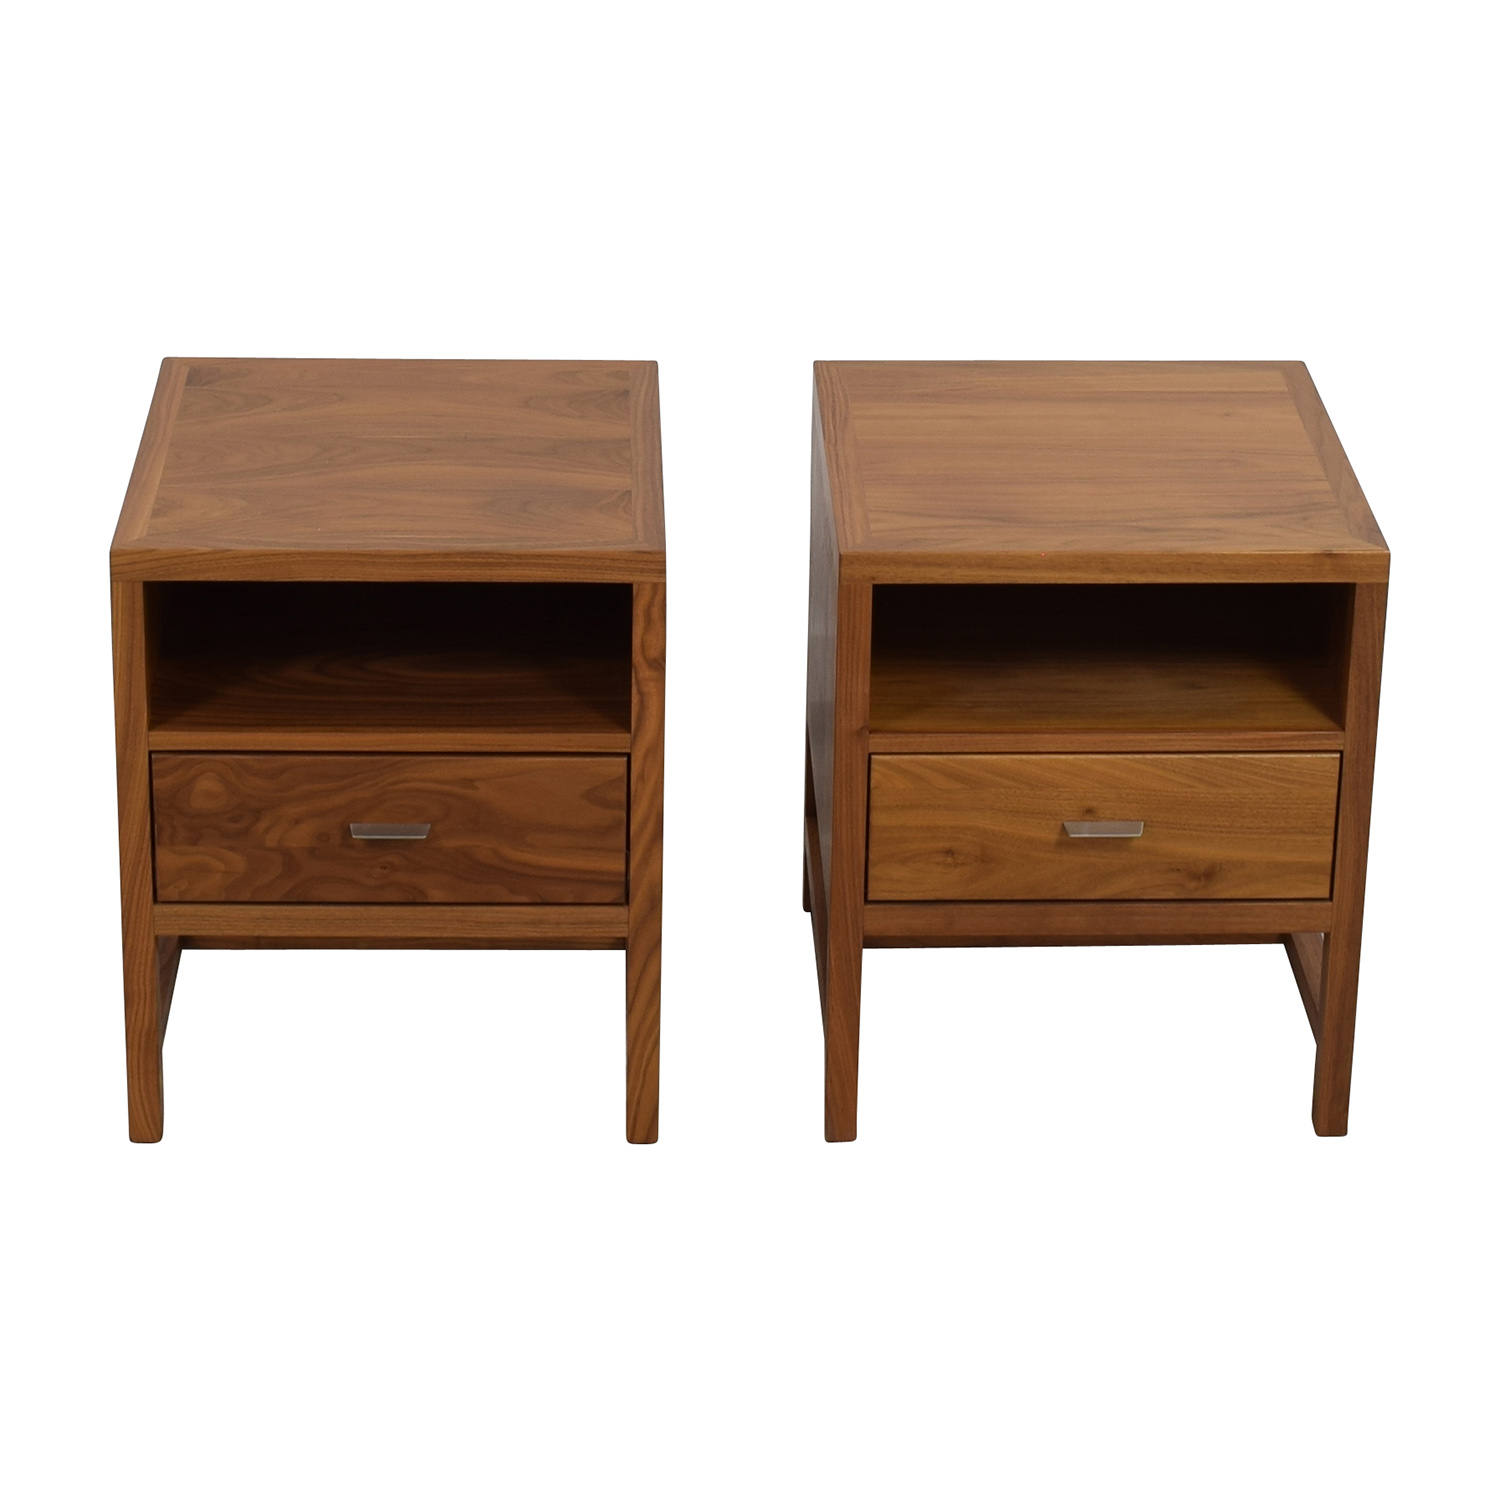 shop Room & Board Berkeley Walnut Nightstands Room & Board